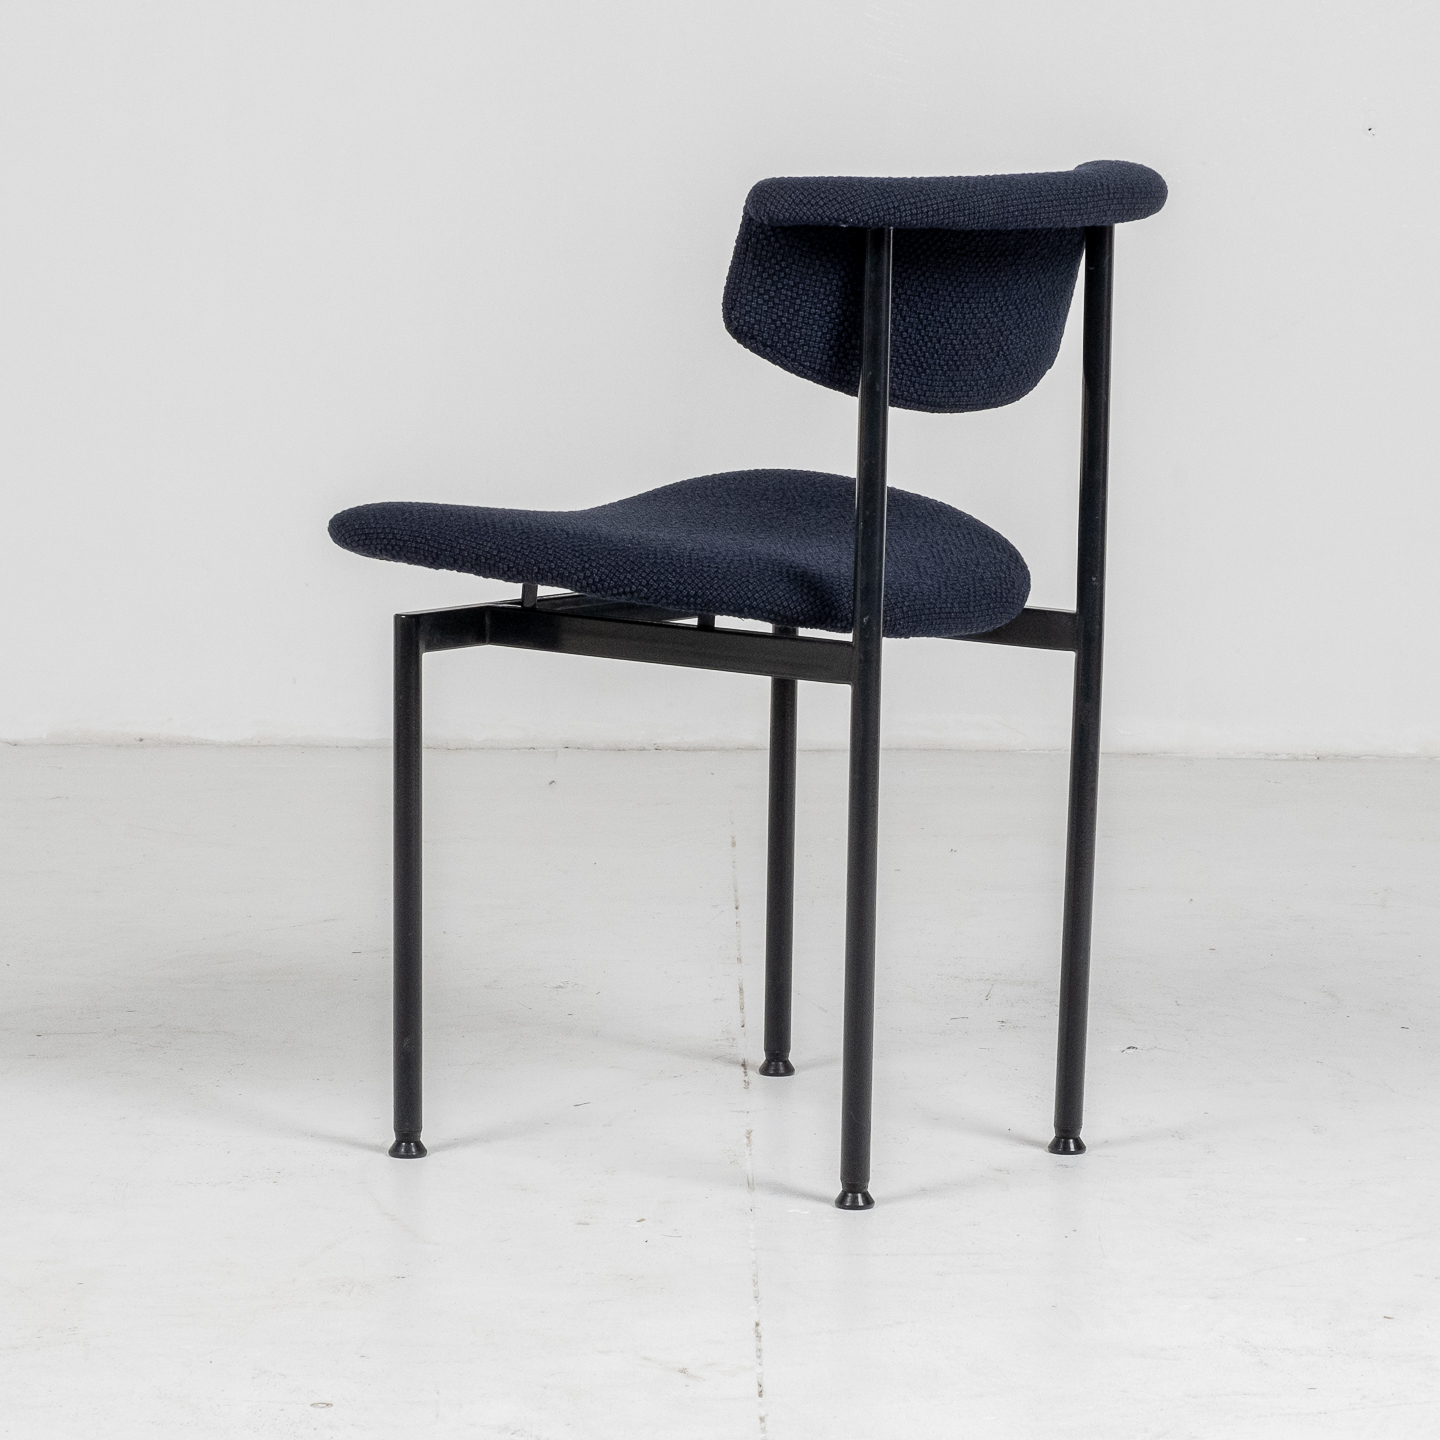 Set Of Four Meander Alpha Dining Chairs By Rudolf Wolf For Gaasbeek & Van Tiel In New Kvadart Upholstery, 1960s, The Netherlands70